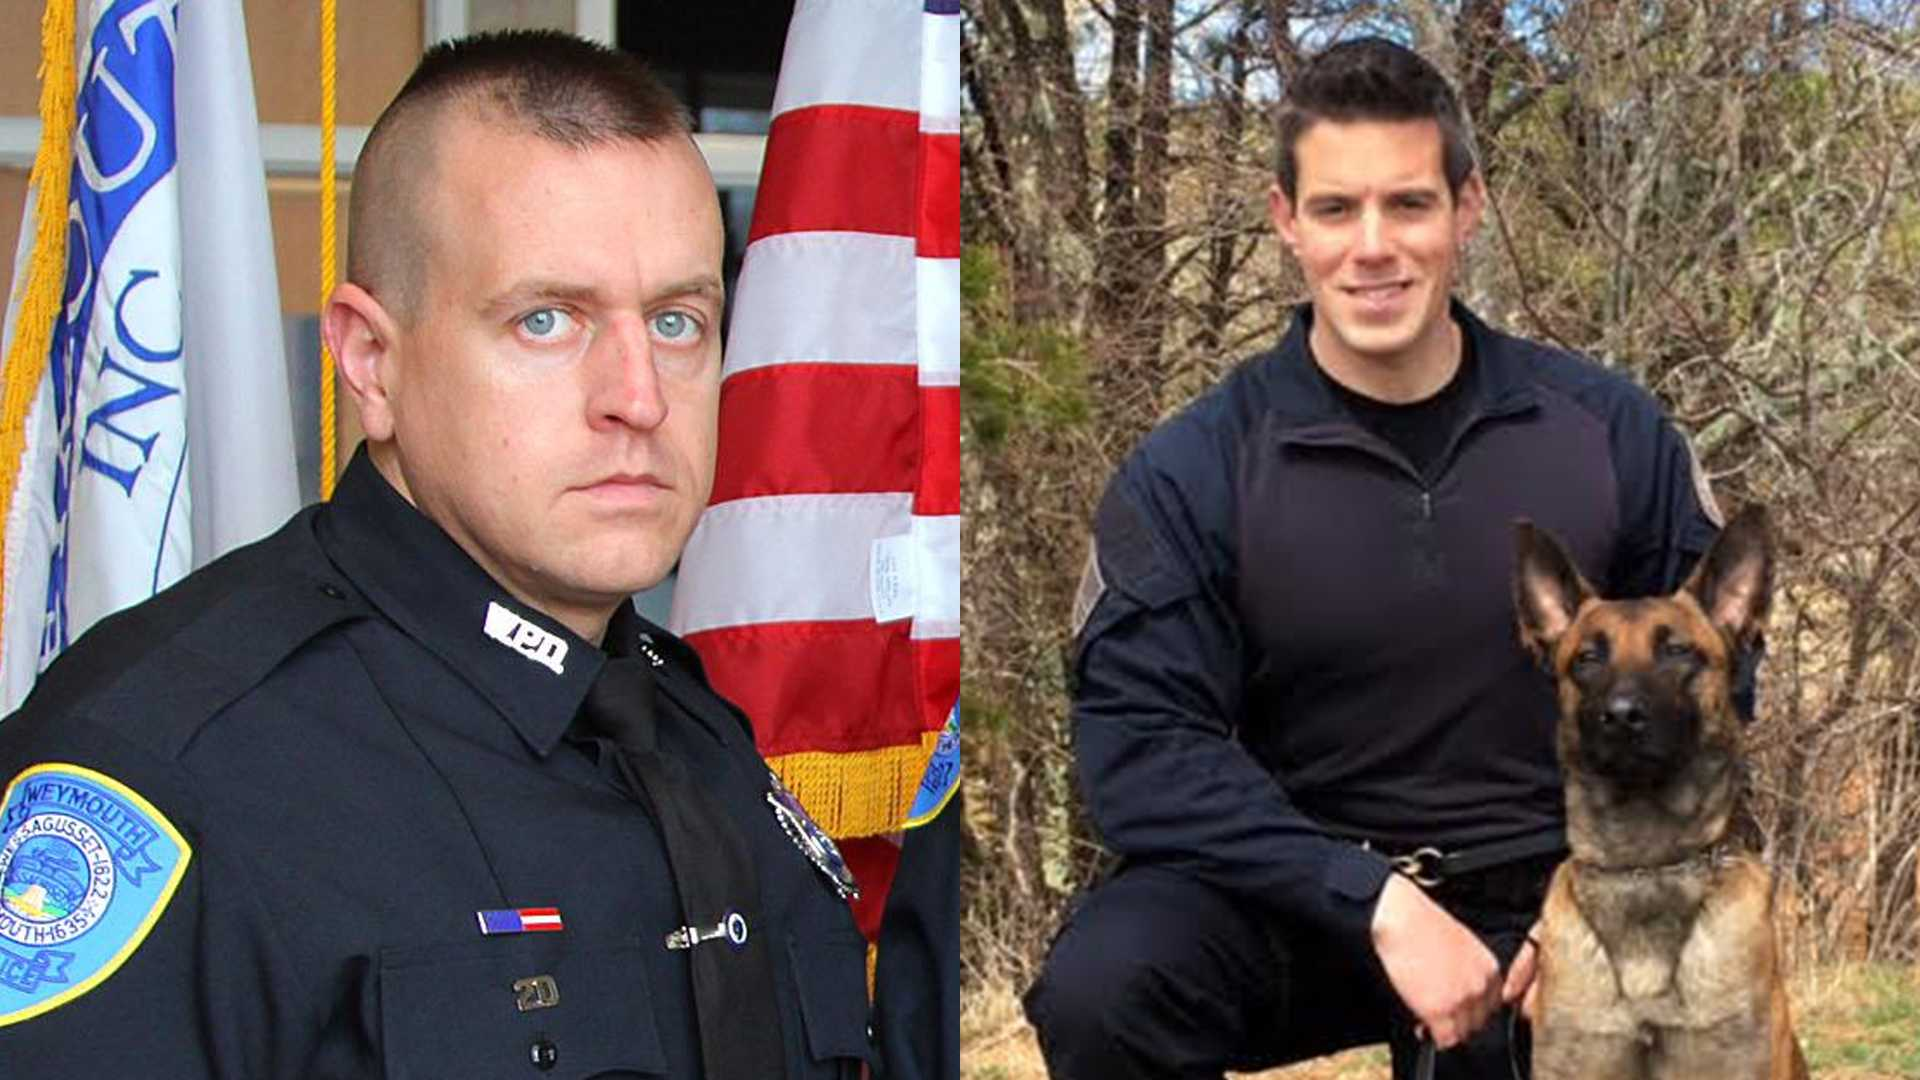 'Hearts are broken once again:' Sean Gannon's mom reacts to death of Weymouth officer